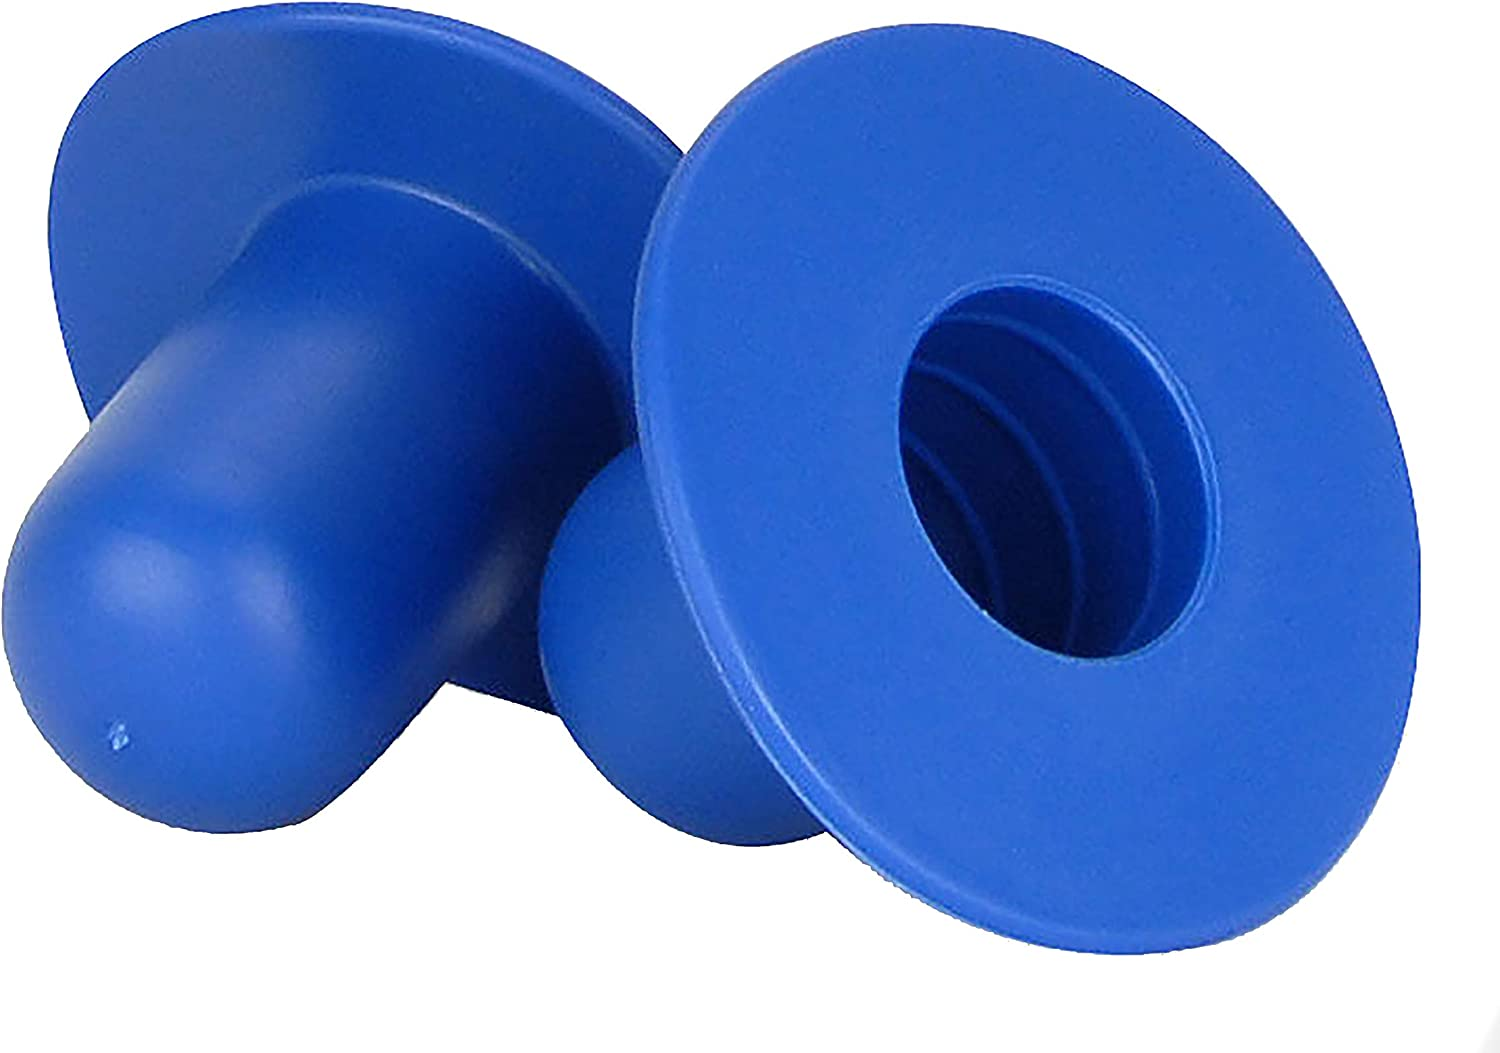 (2) Intex Small Pool Hole Plugs by Intex - Colors vary